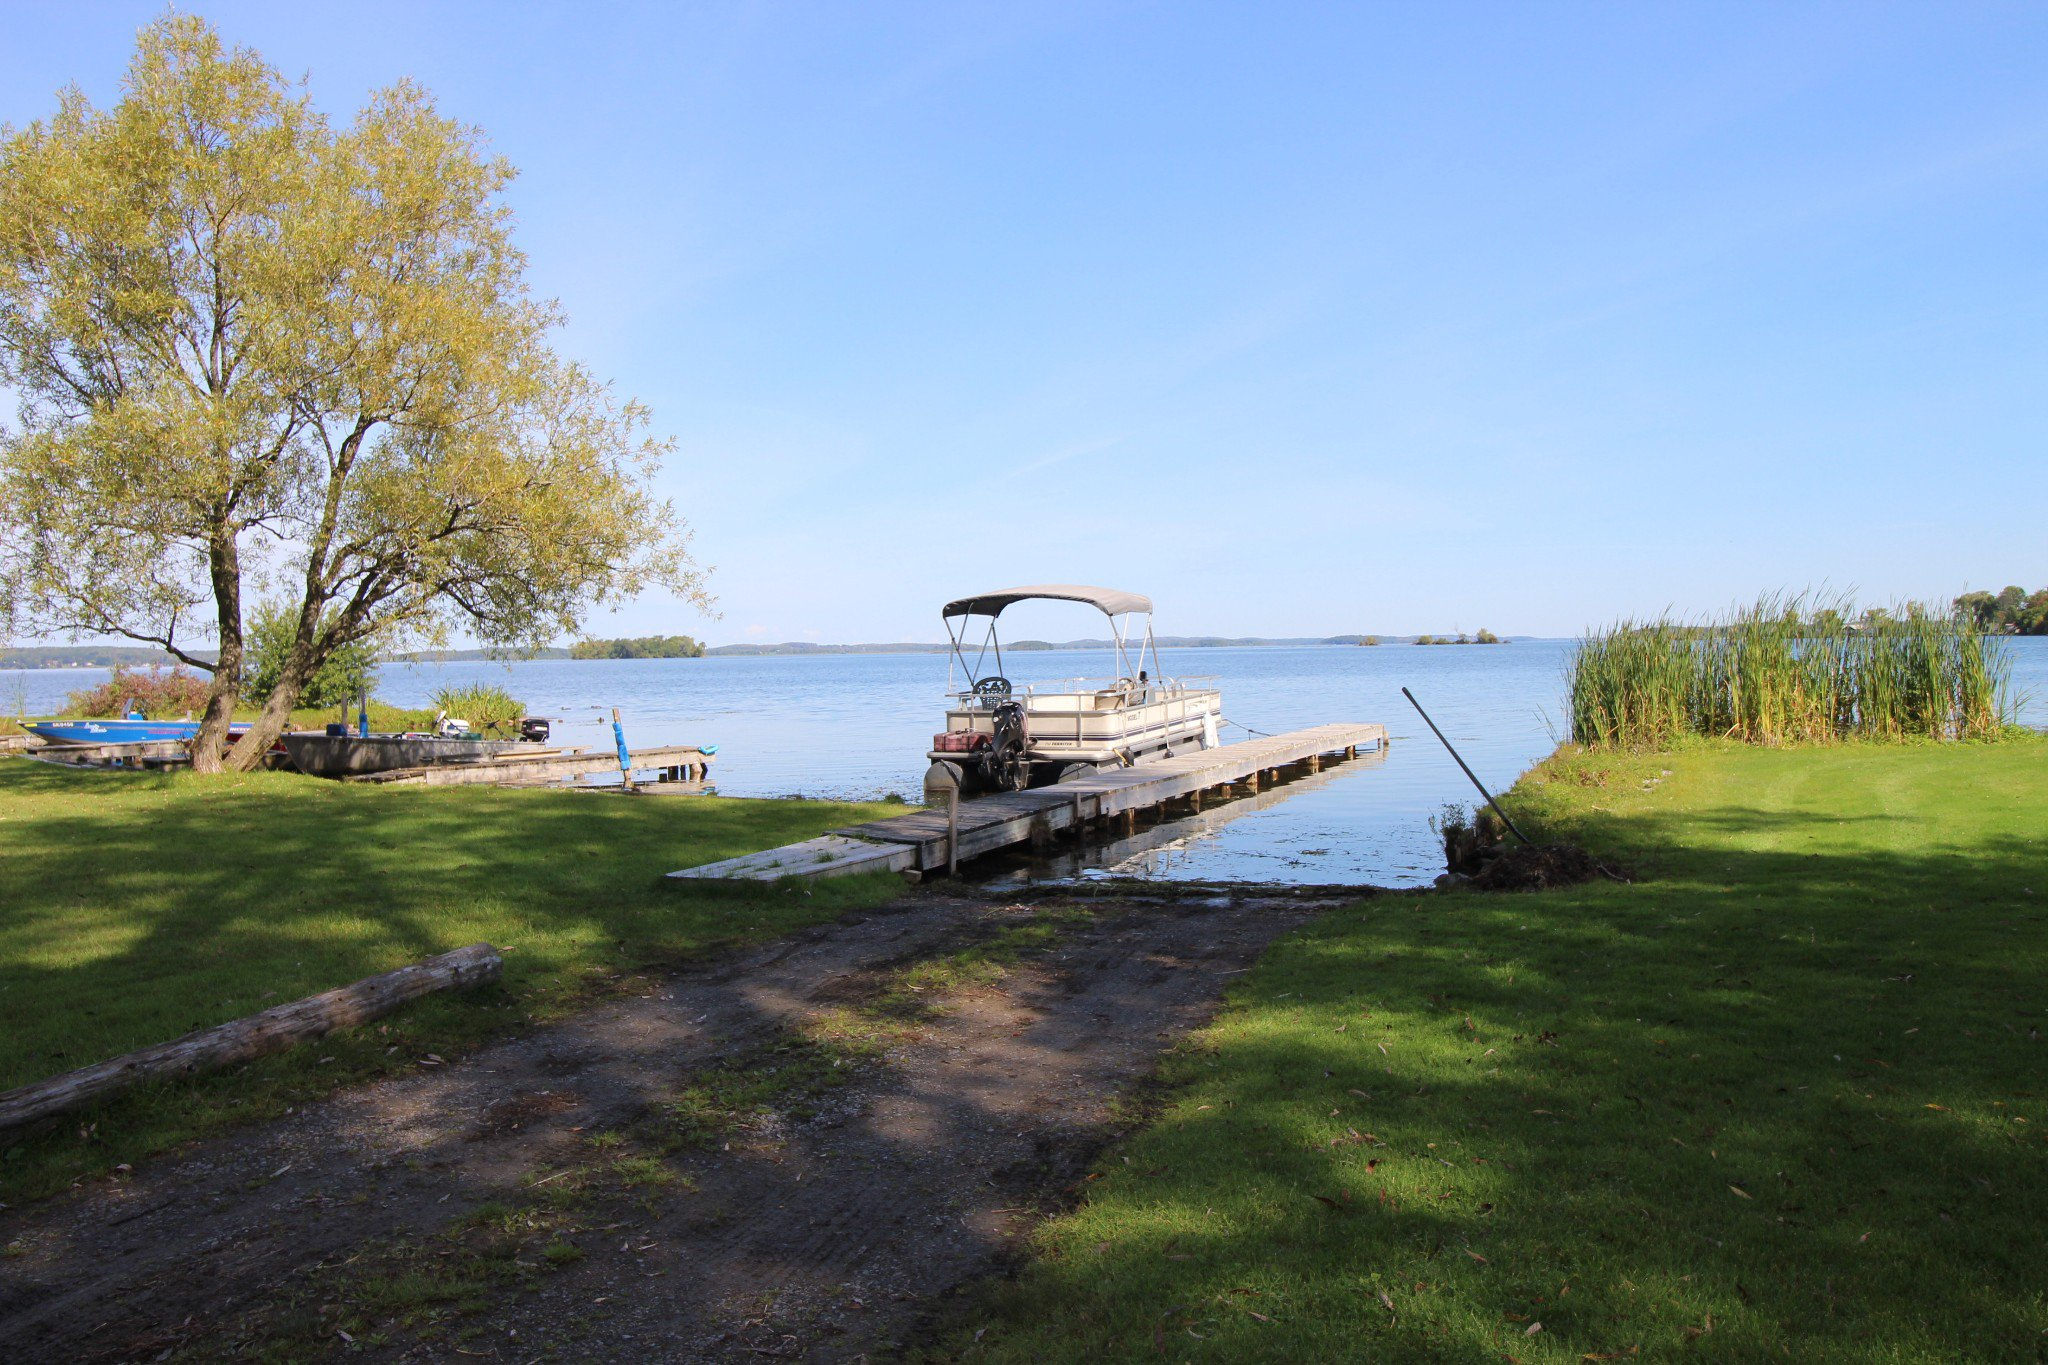 Photo 10: Photos: 6010 Rice Lake Scenic Drive in Harwood: Other for sale : MLS®# 223405